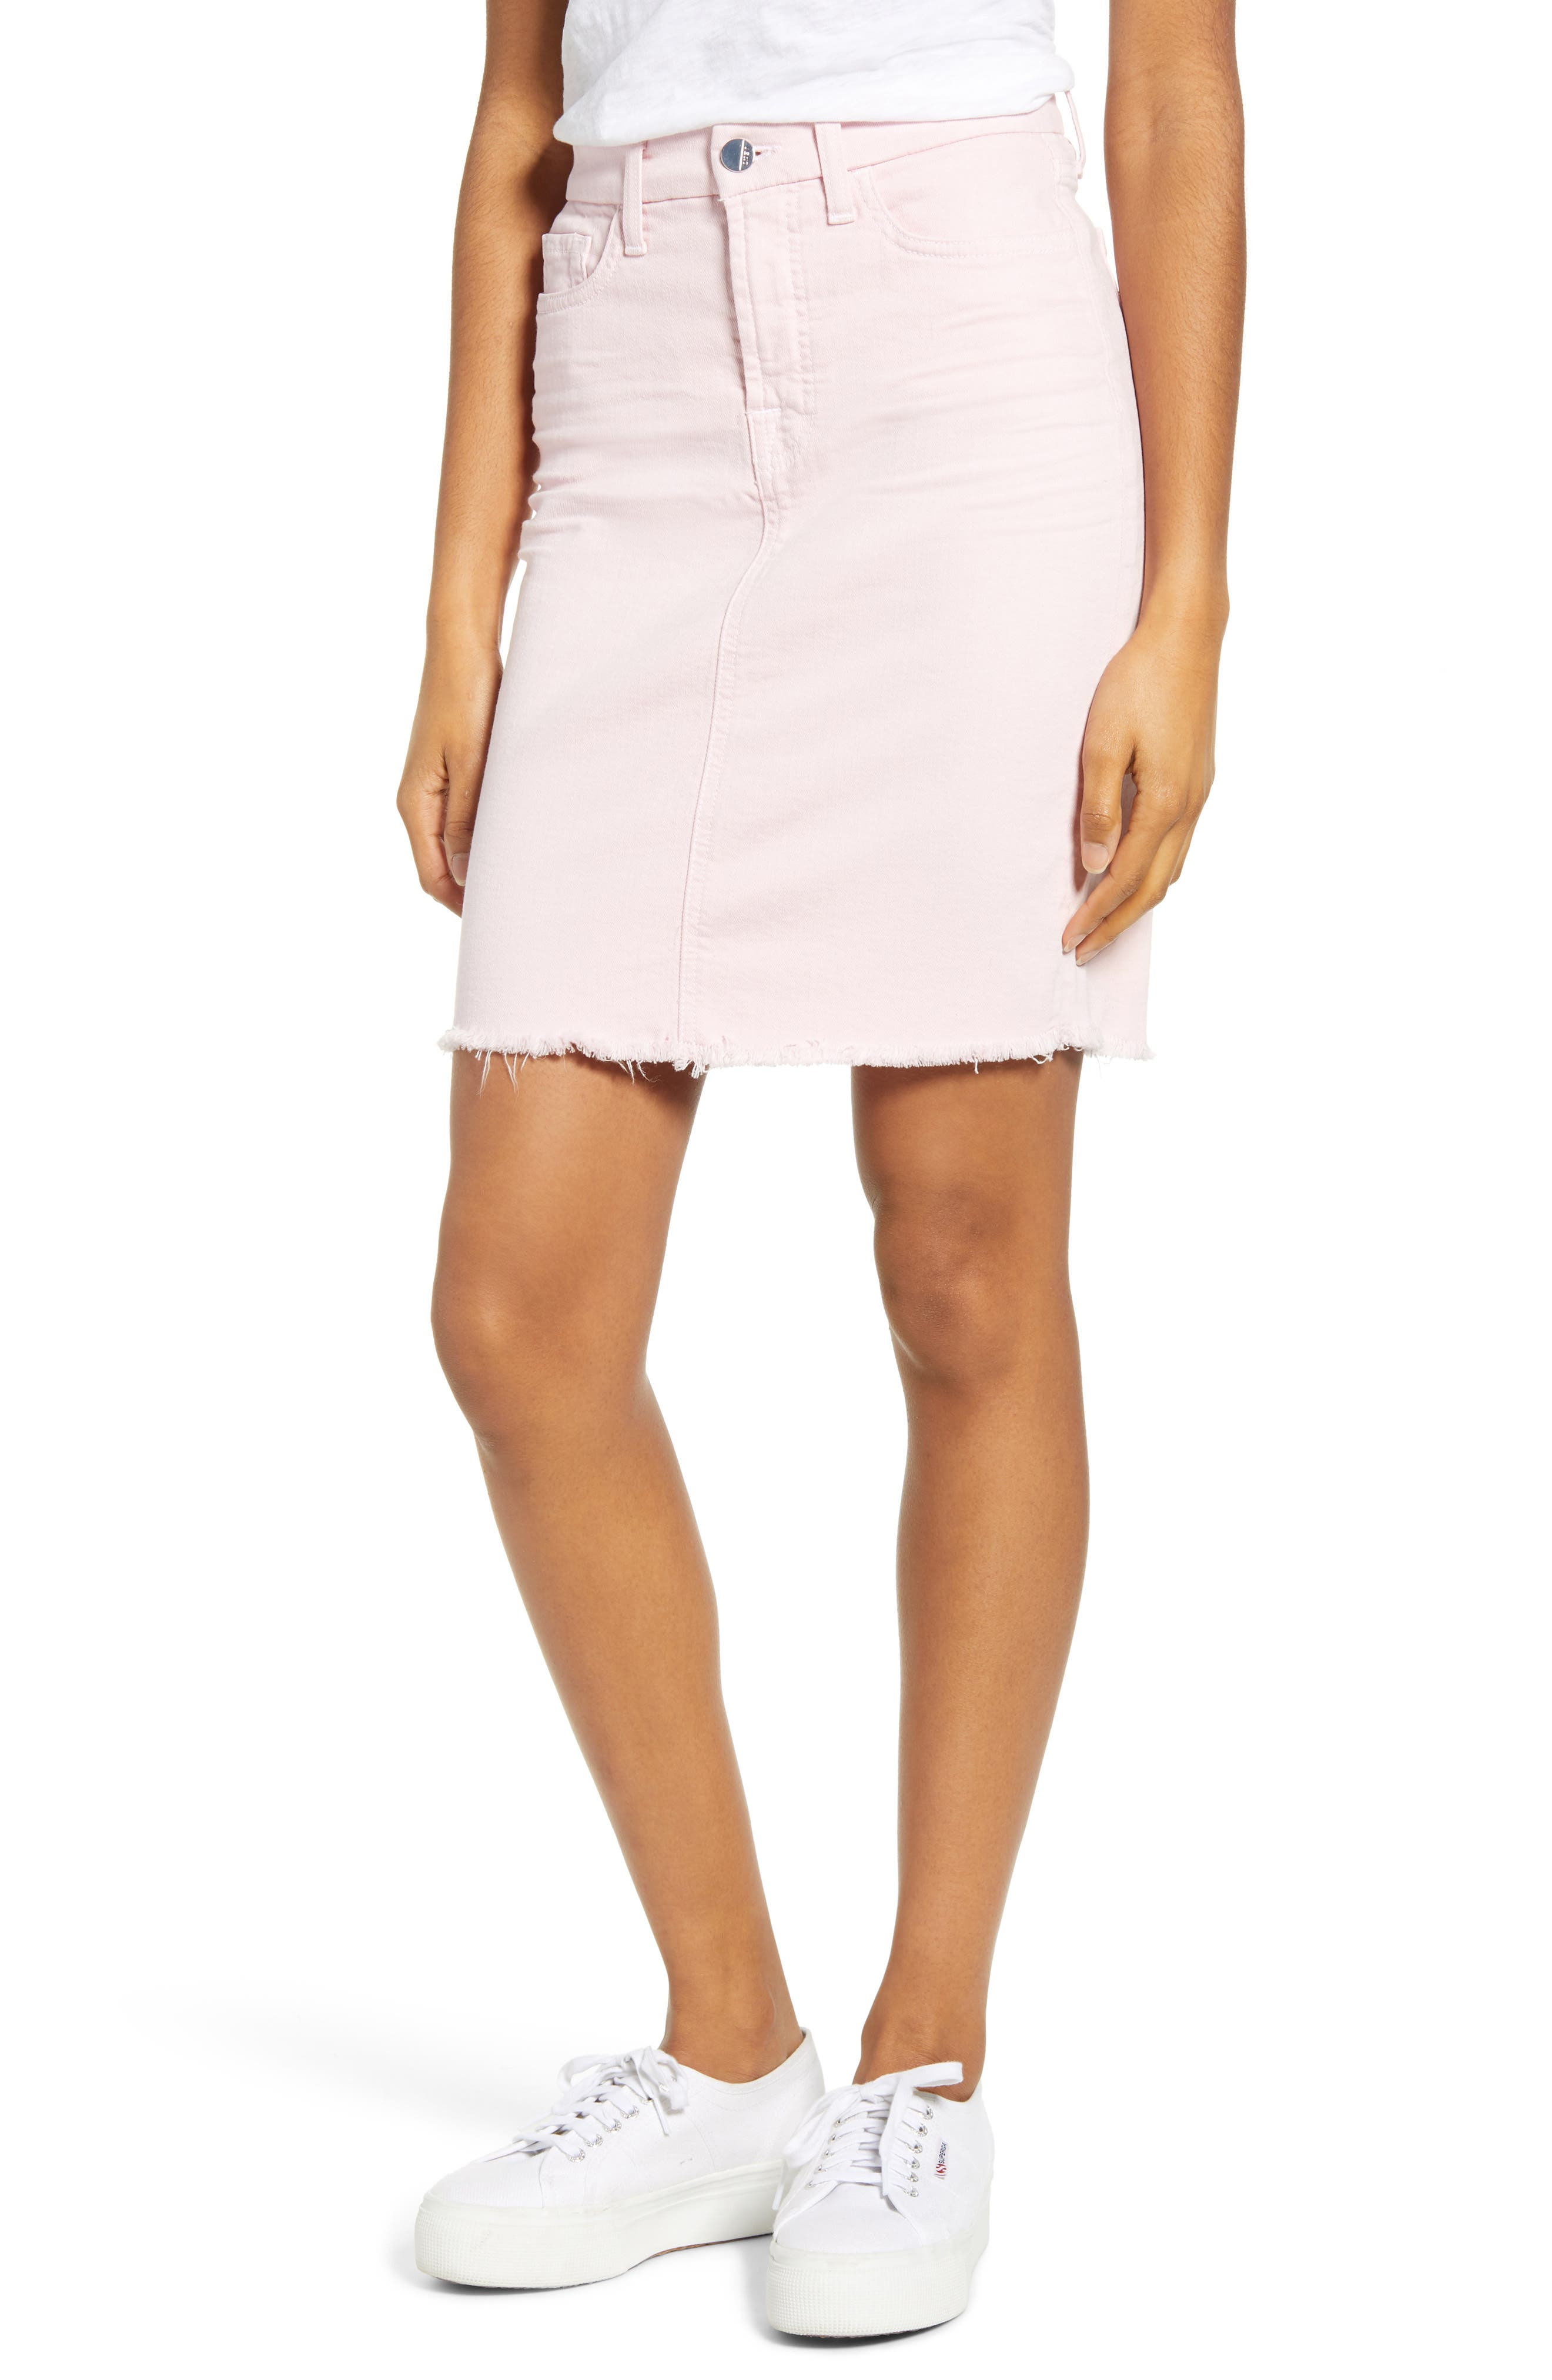 By 7 For All Mankind Denim Pencil Skirt